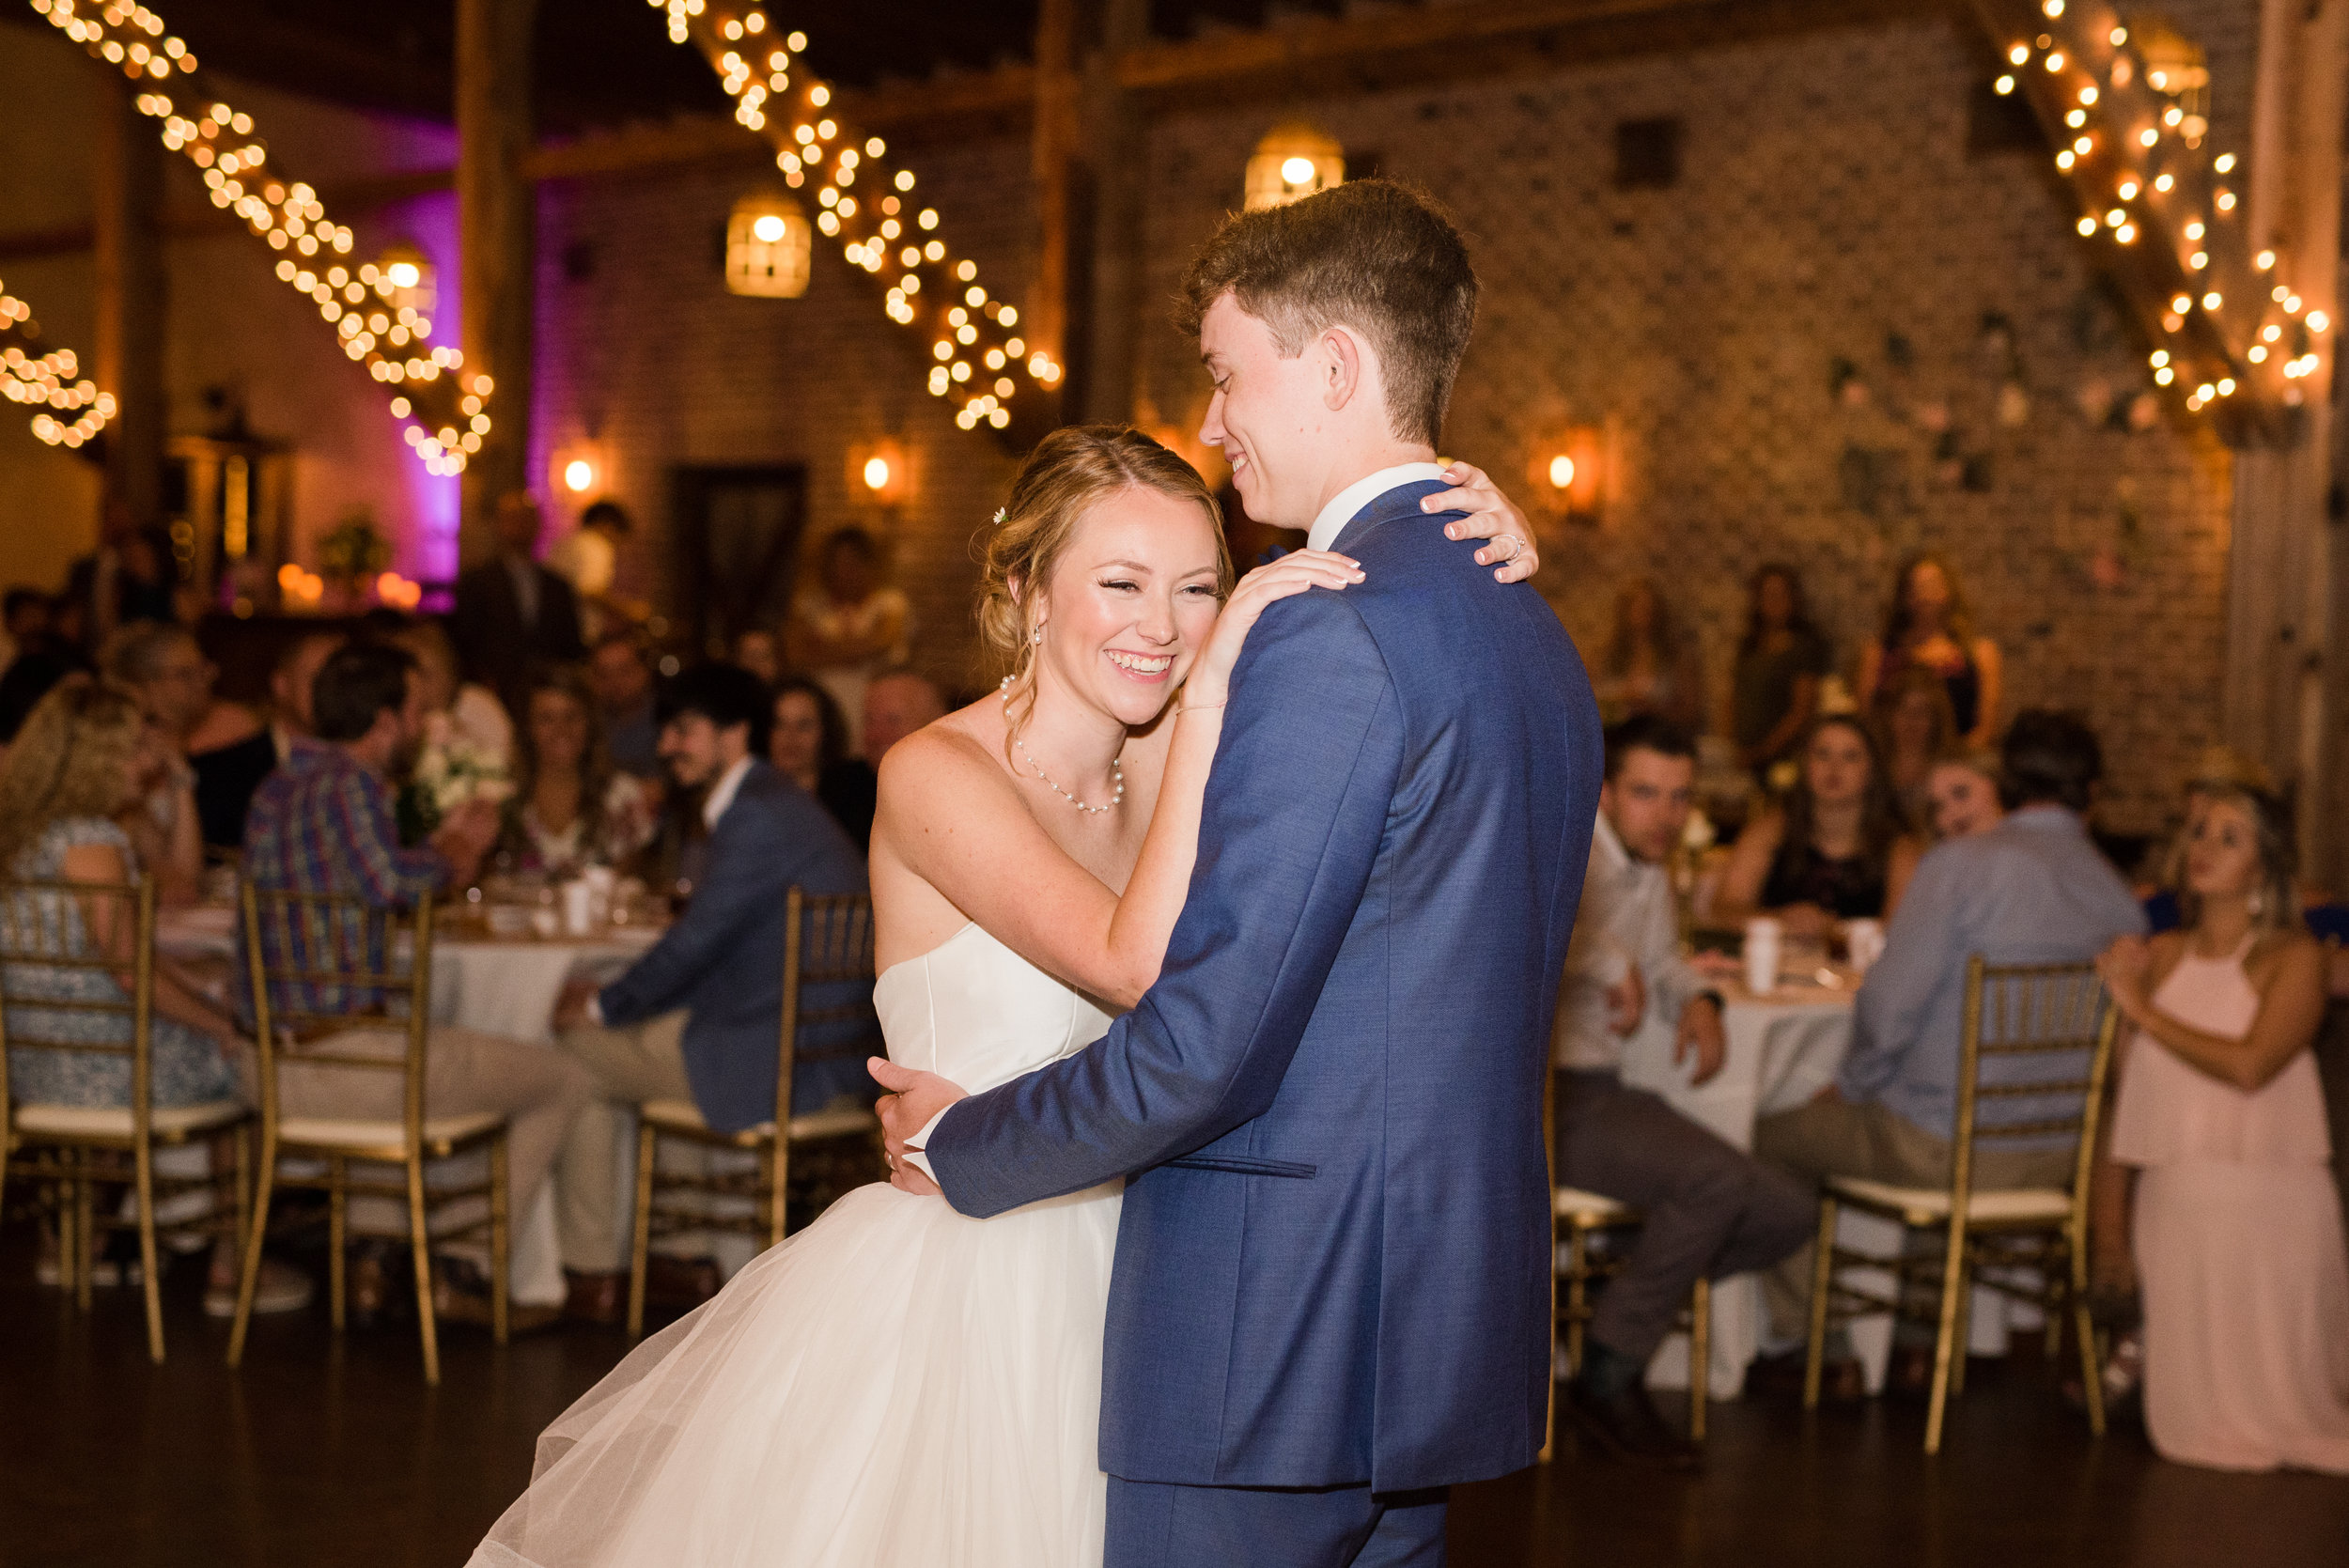 The Barn at Bridlewood wedding in Hattiesburg, Mississippi (MS) in June | Bride and Groom First Dance at the Wedding